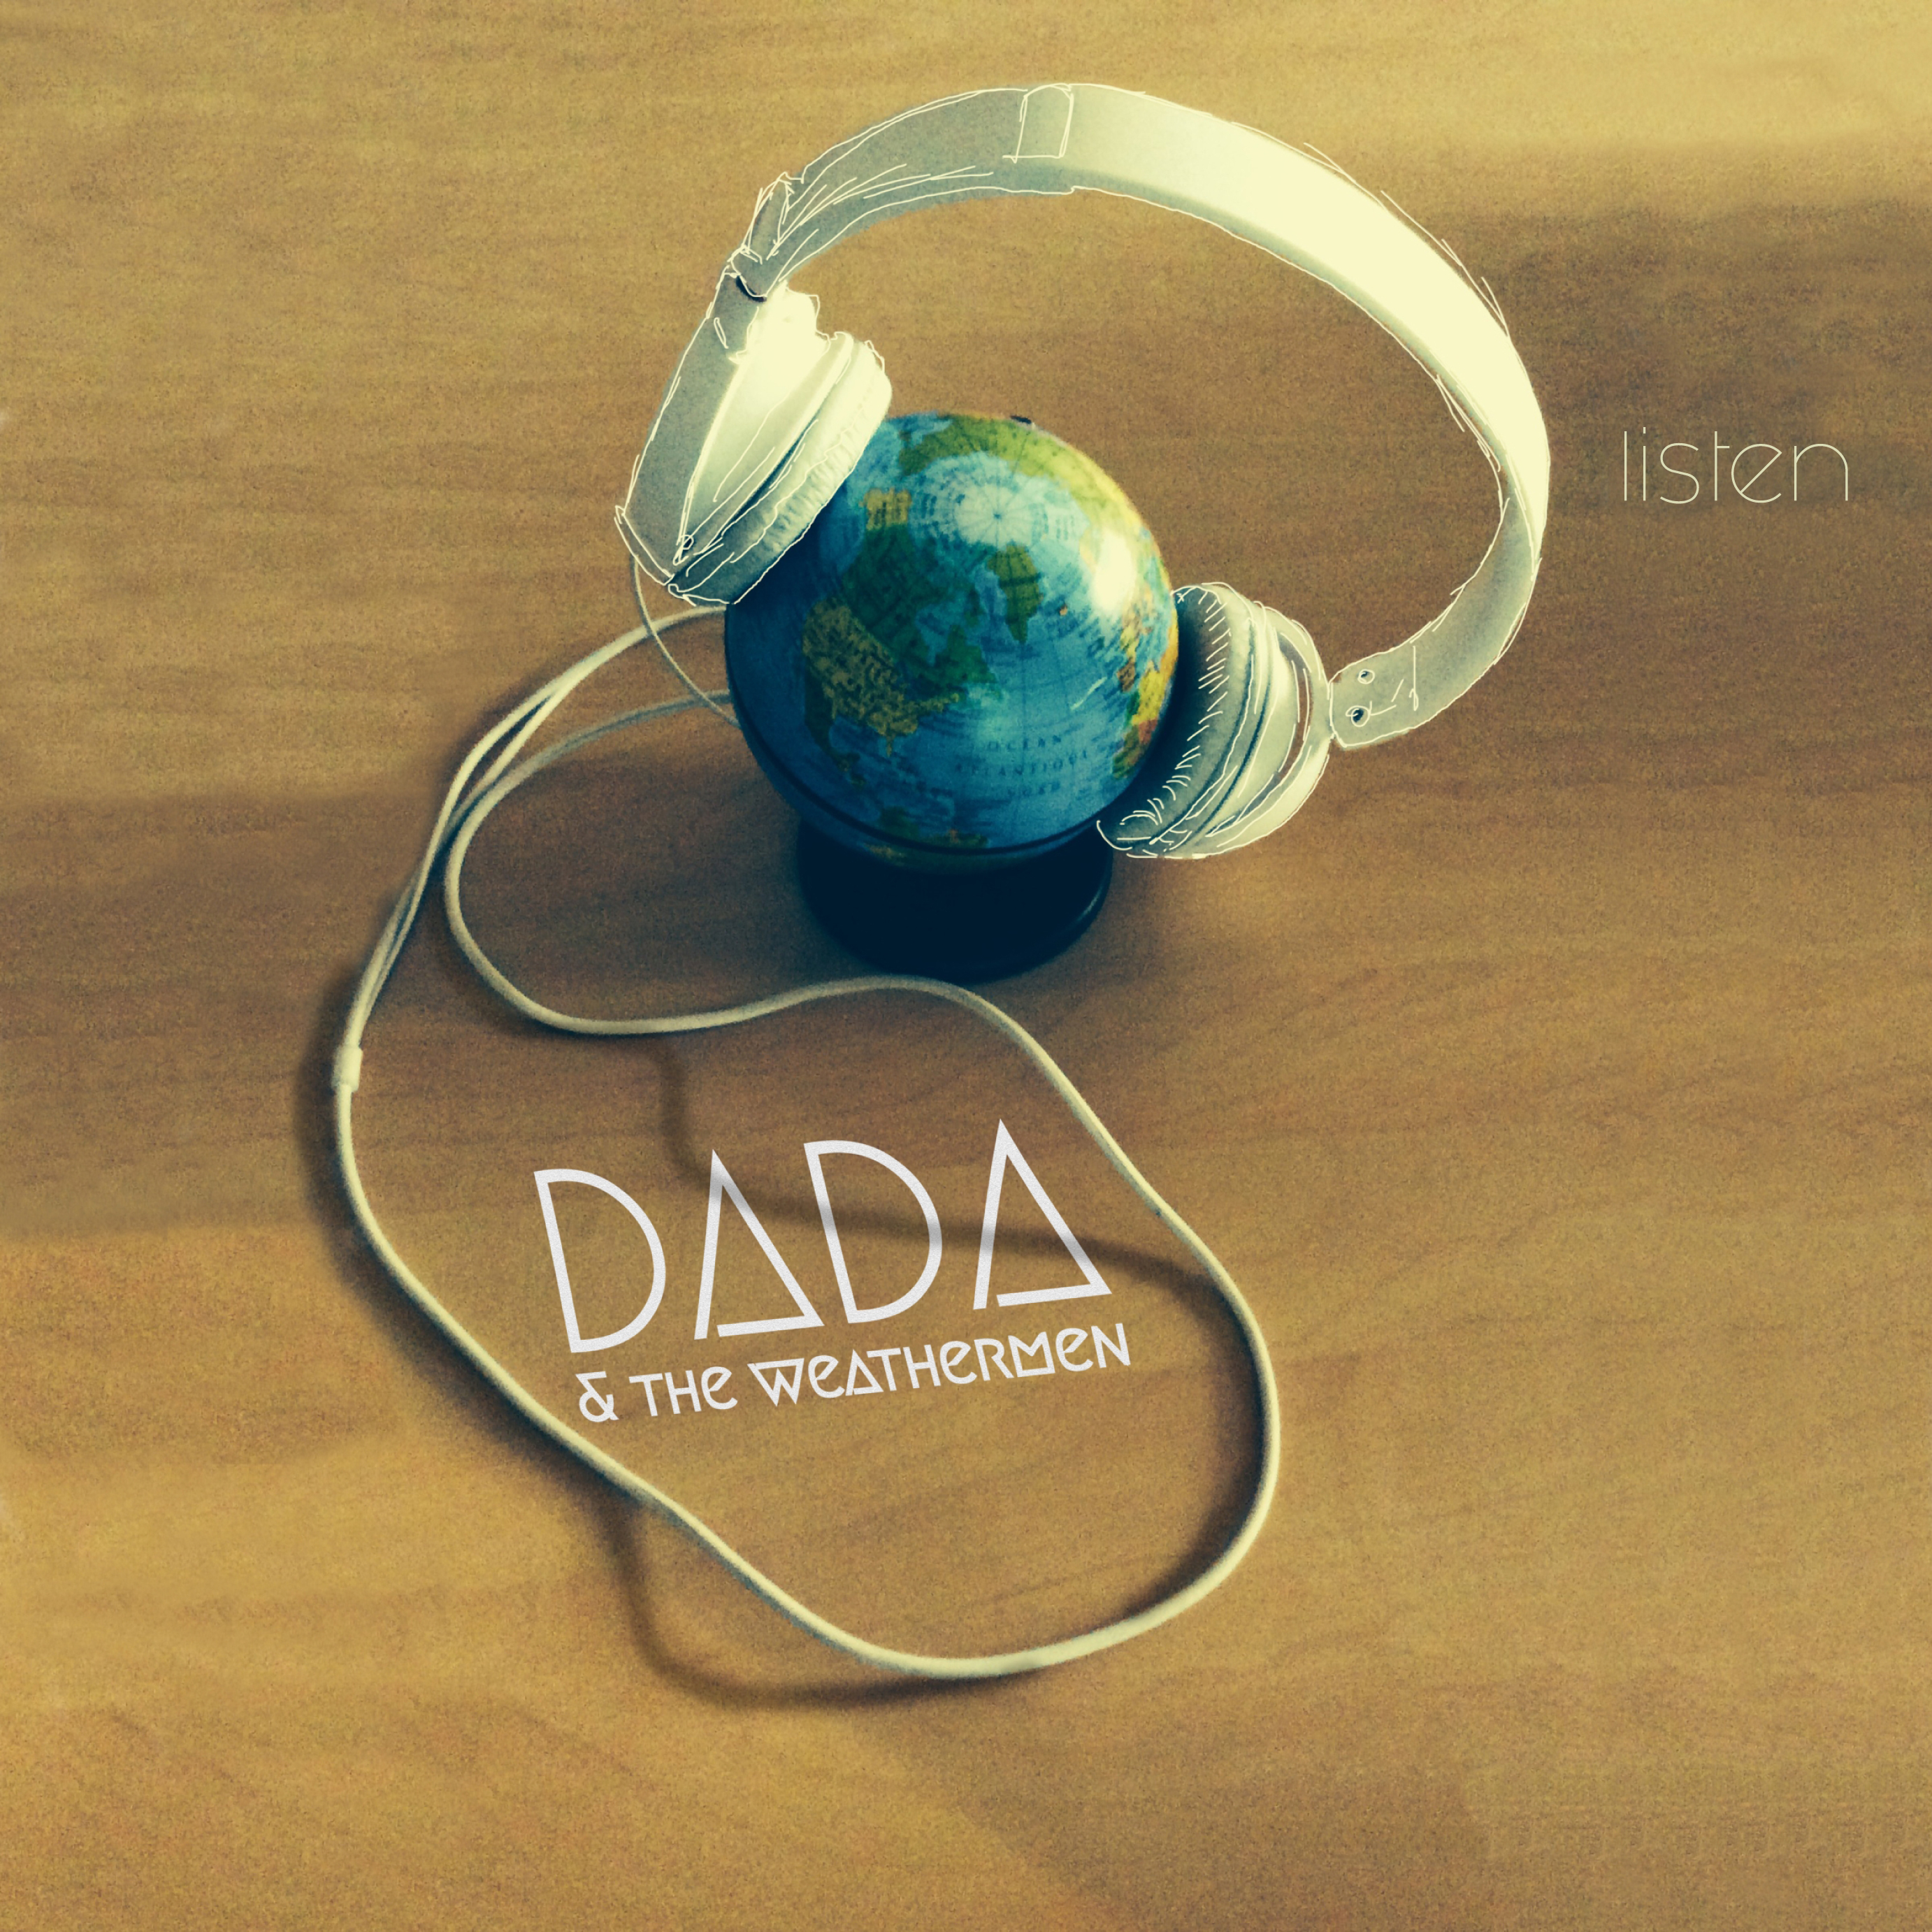 LISTEN-artwork-Dada & the weathermen